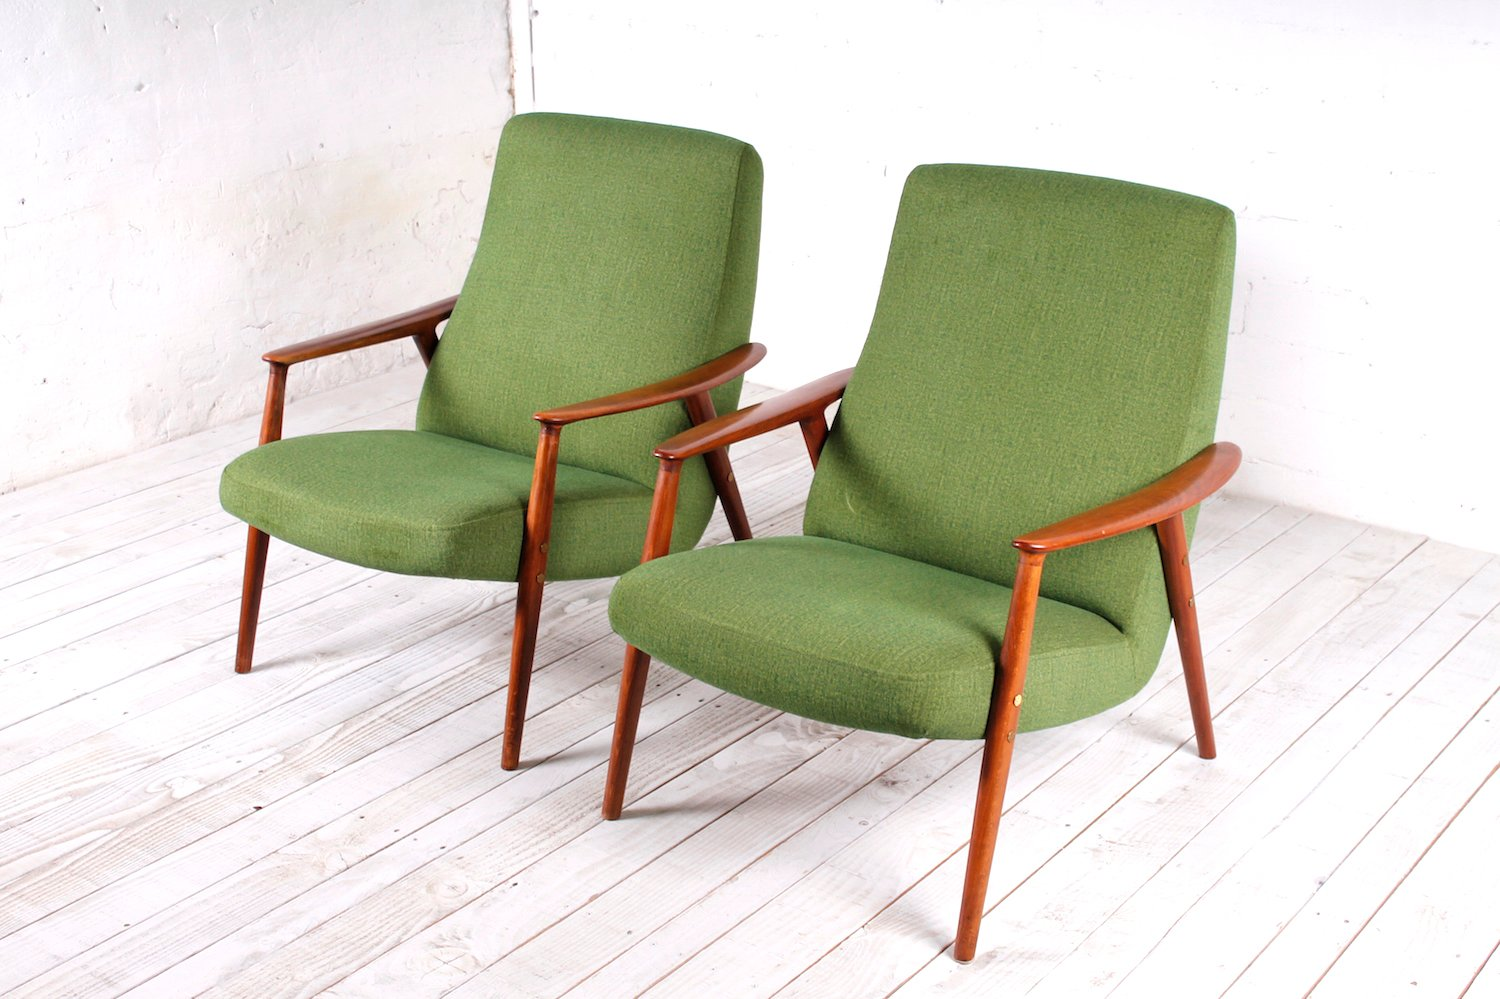 dux sofa uk luxury bed swedish easy chairs from 1950s set of 2 for sale at